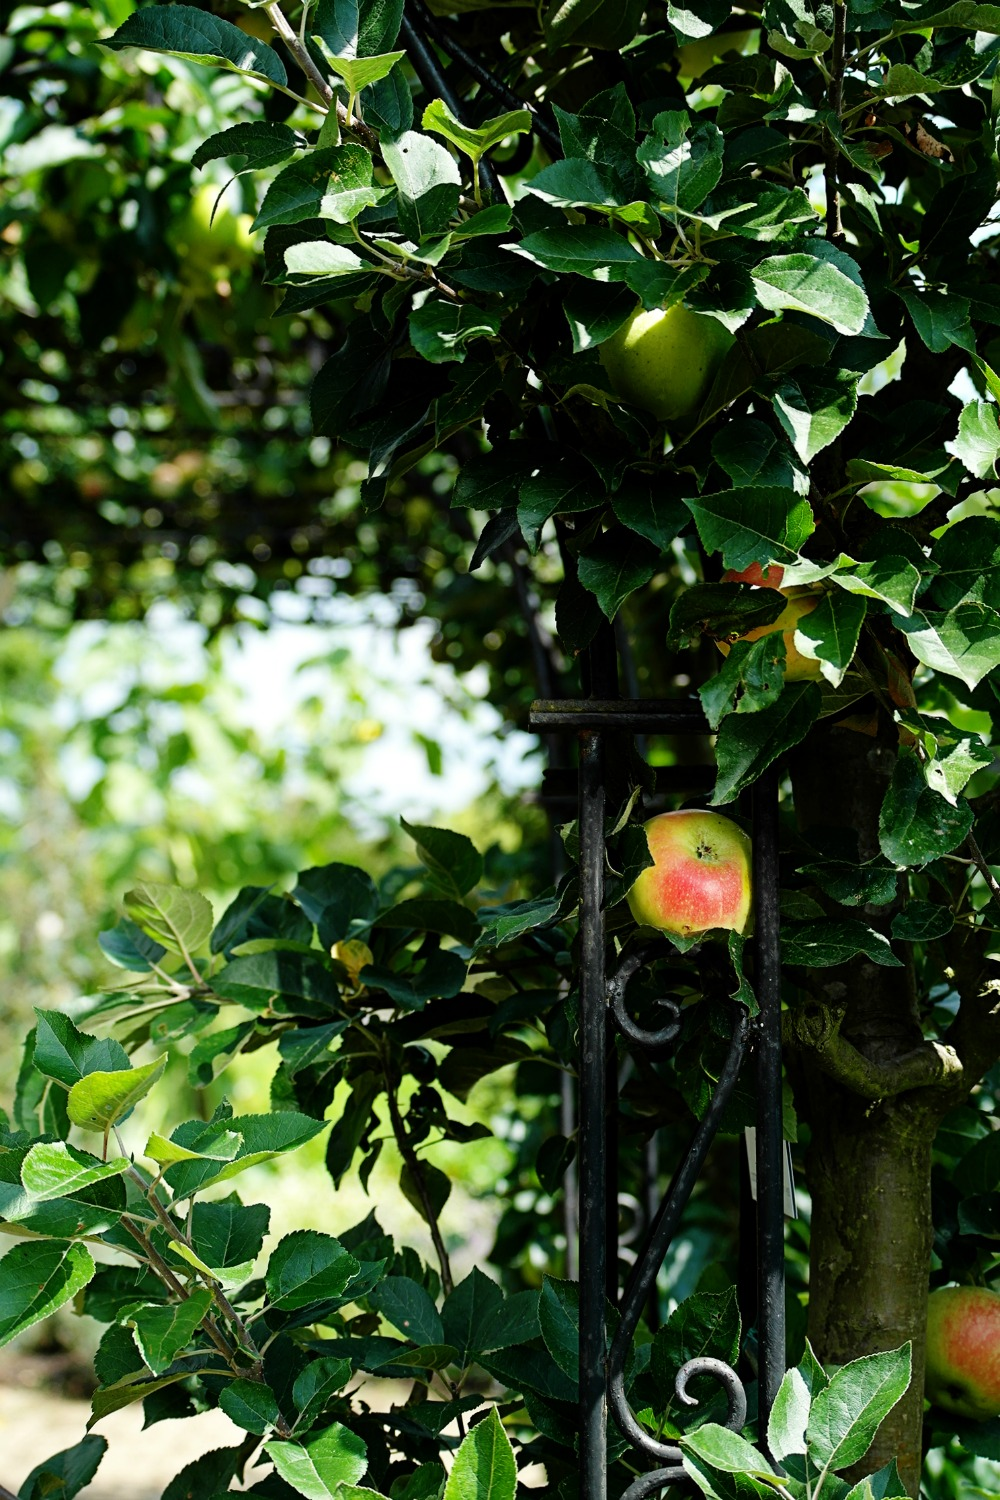 Apples tree trained to an arch